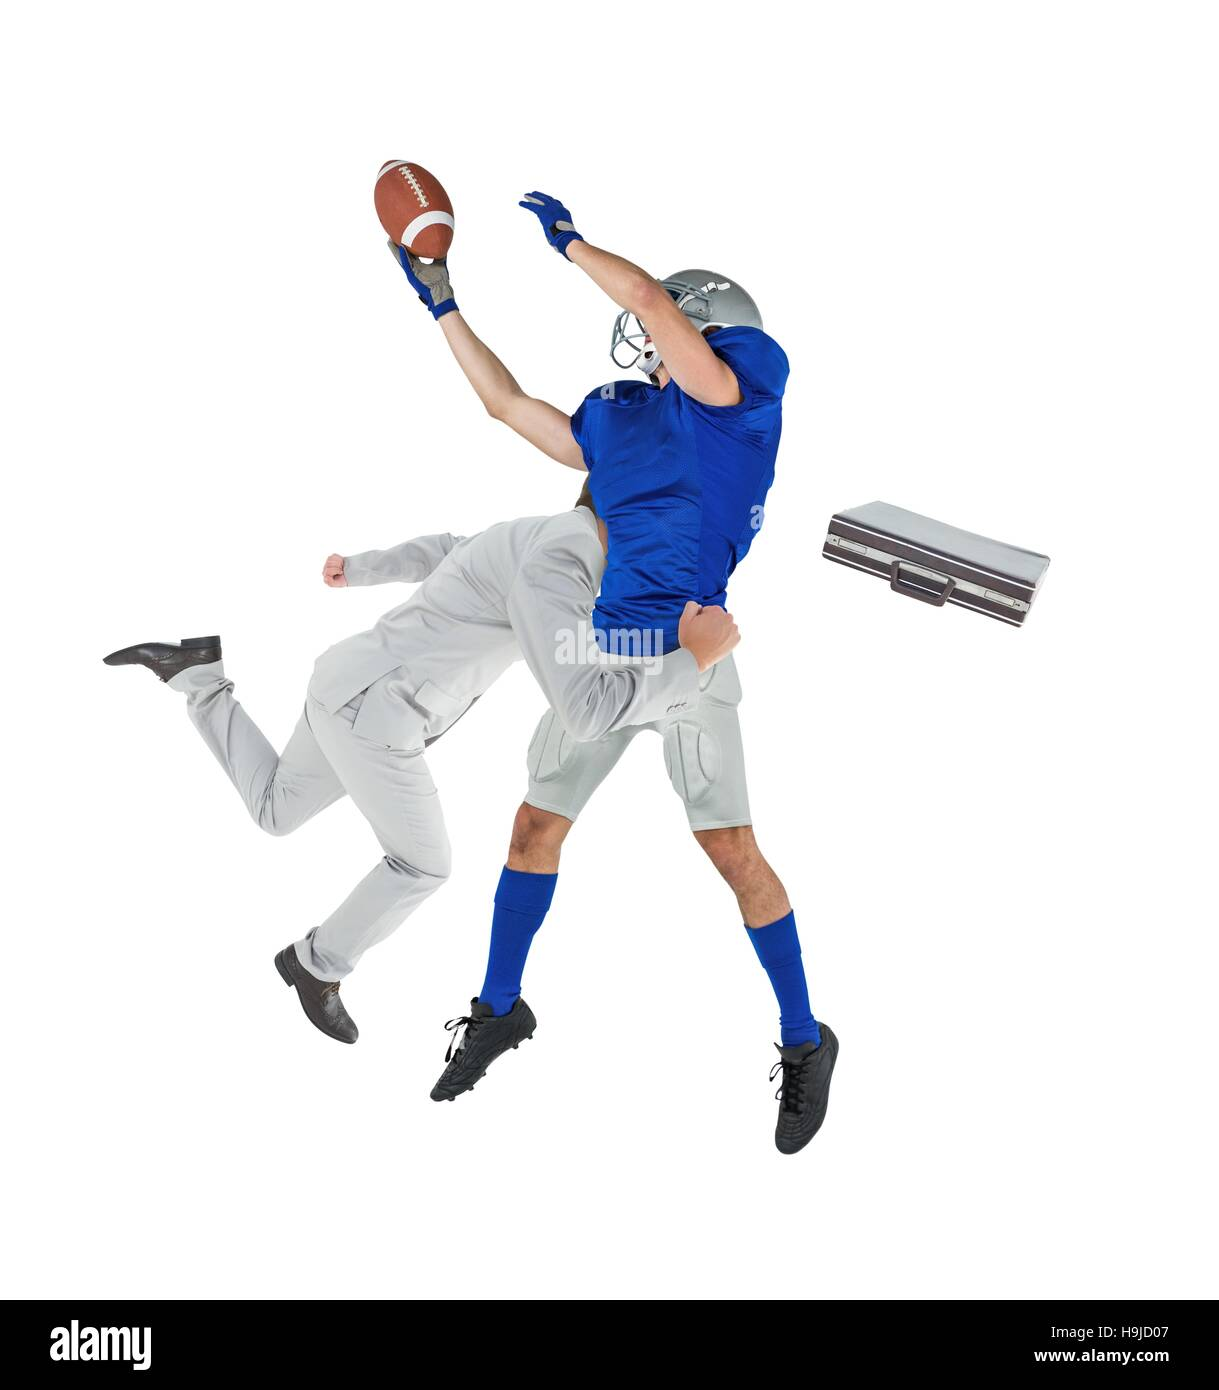 Businessman tackling a football player - Stock Image